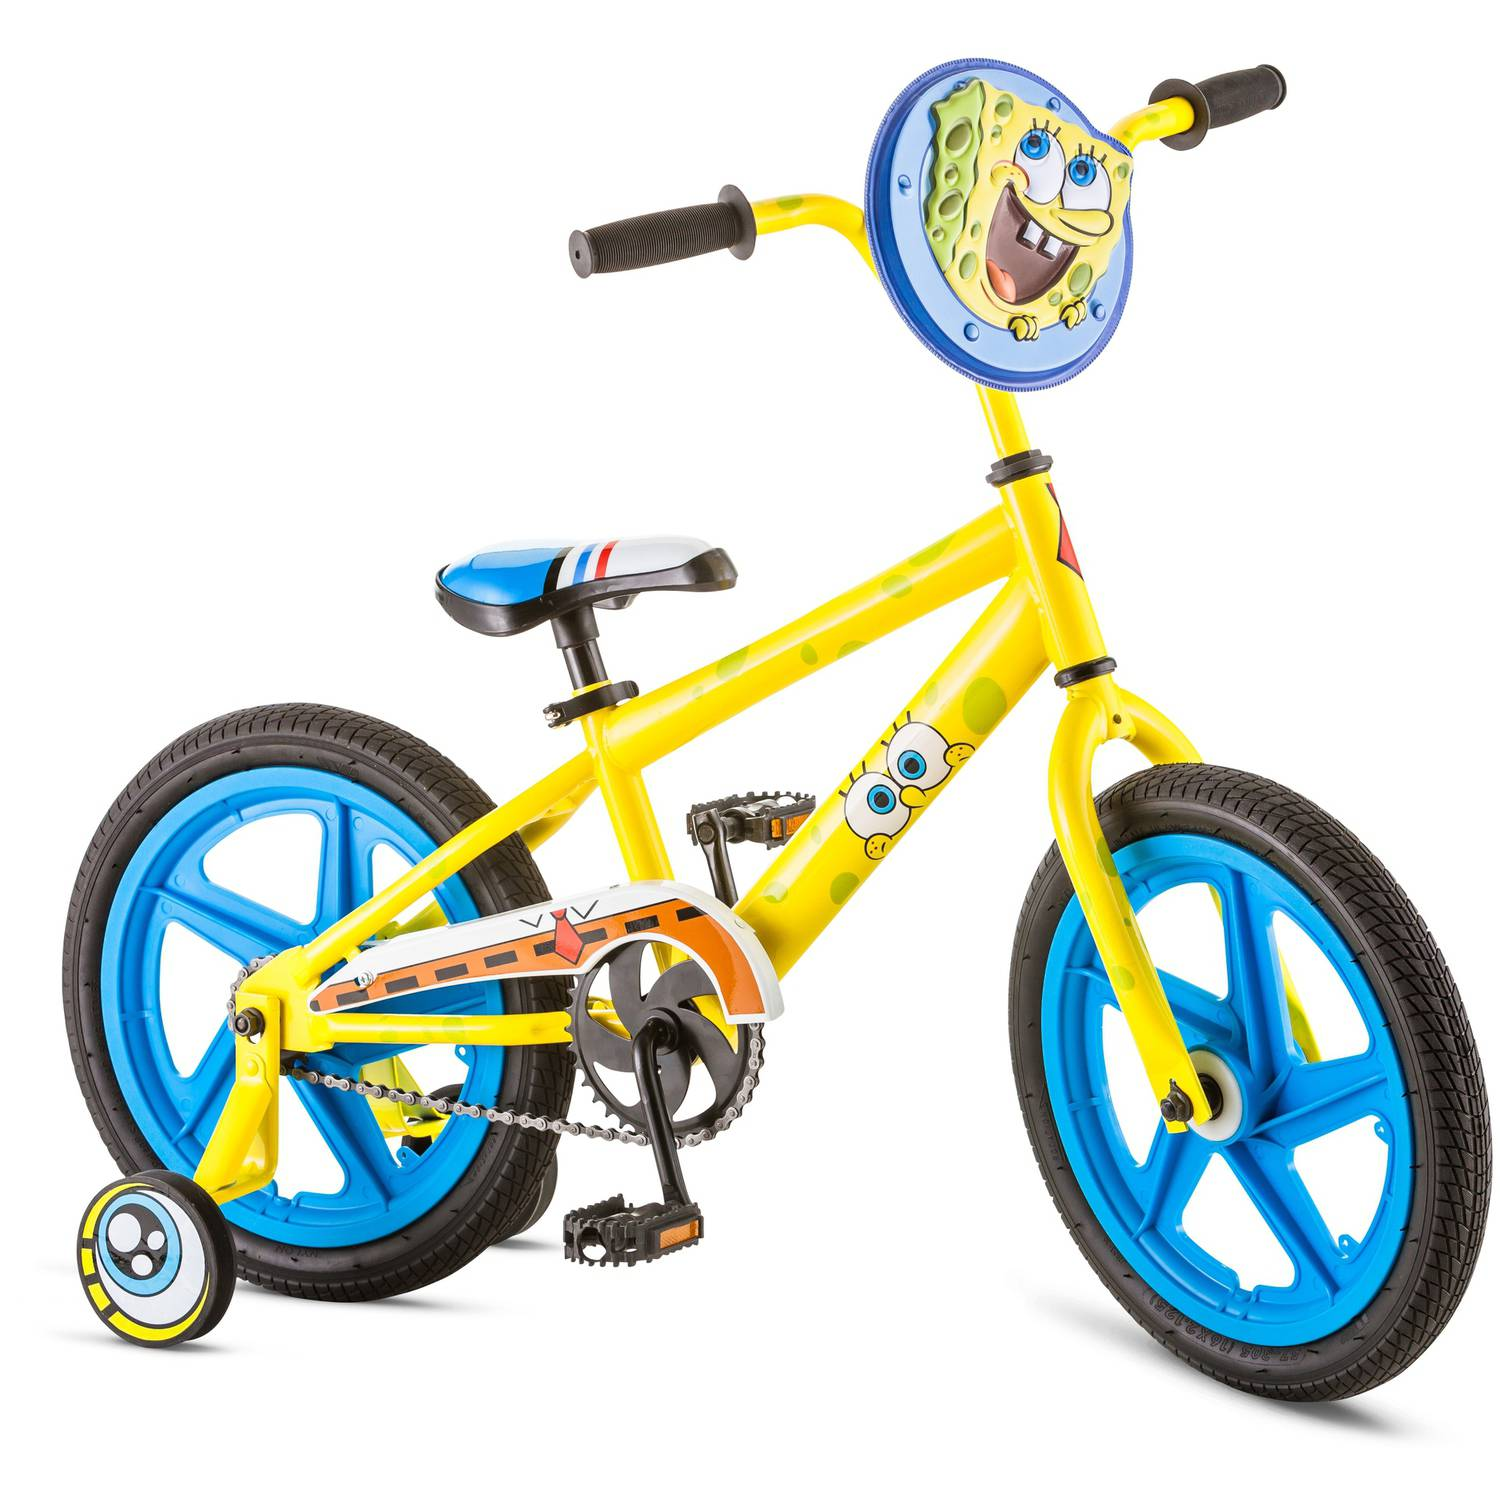 "16"" Spongebob Squarepants Bike"